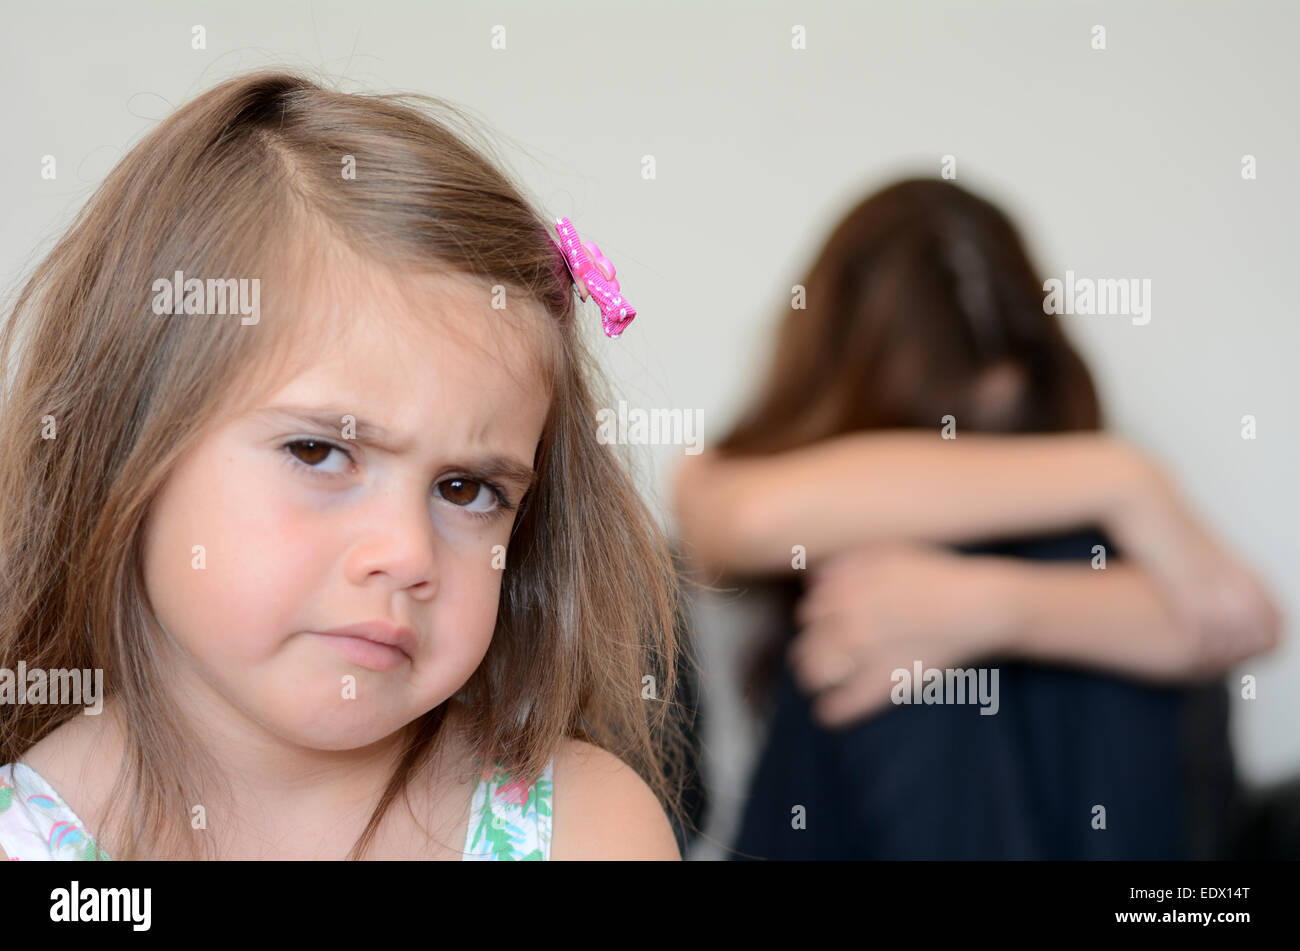 Little girl (age 05) having a temper tantrum with her desperate mother in background - Stock Image